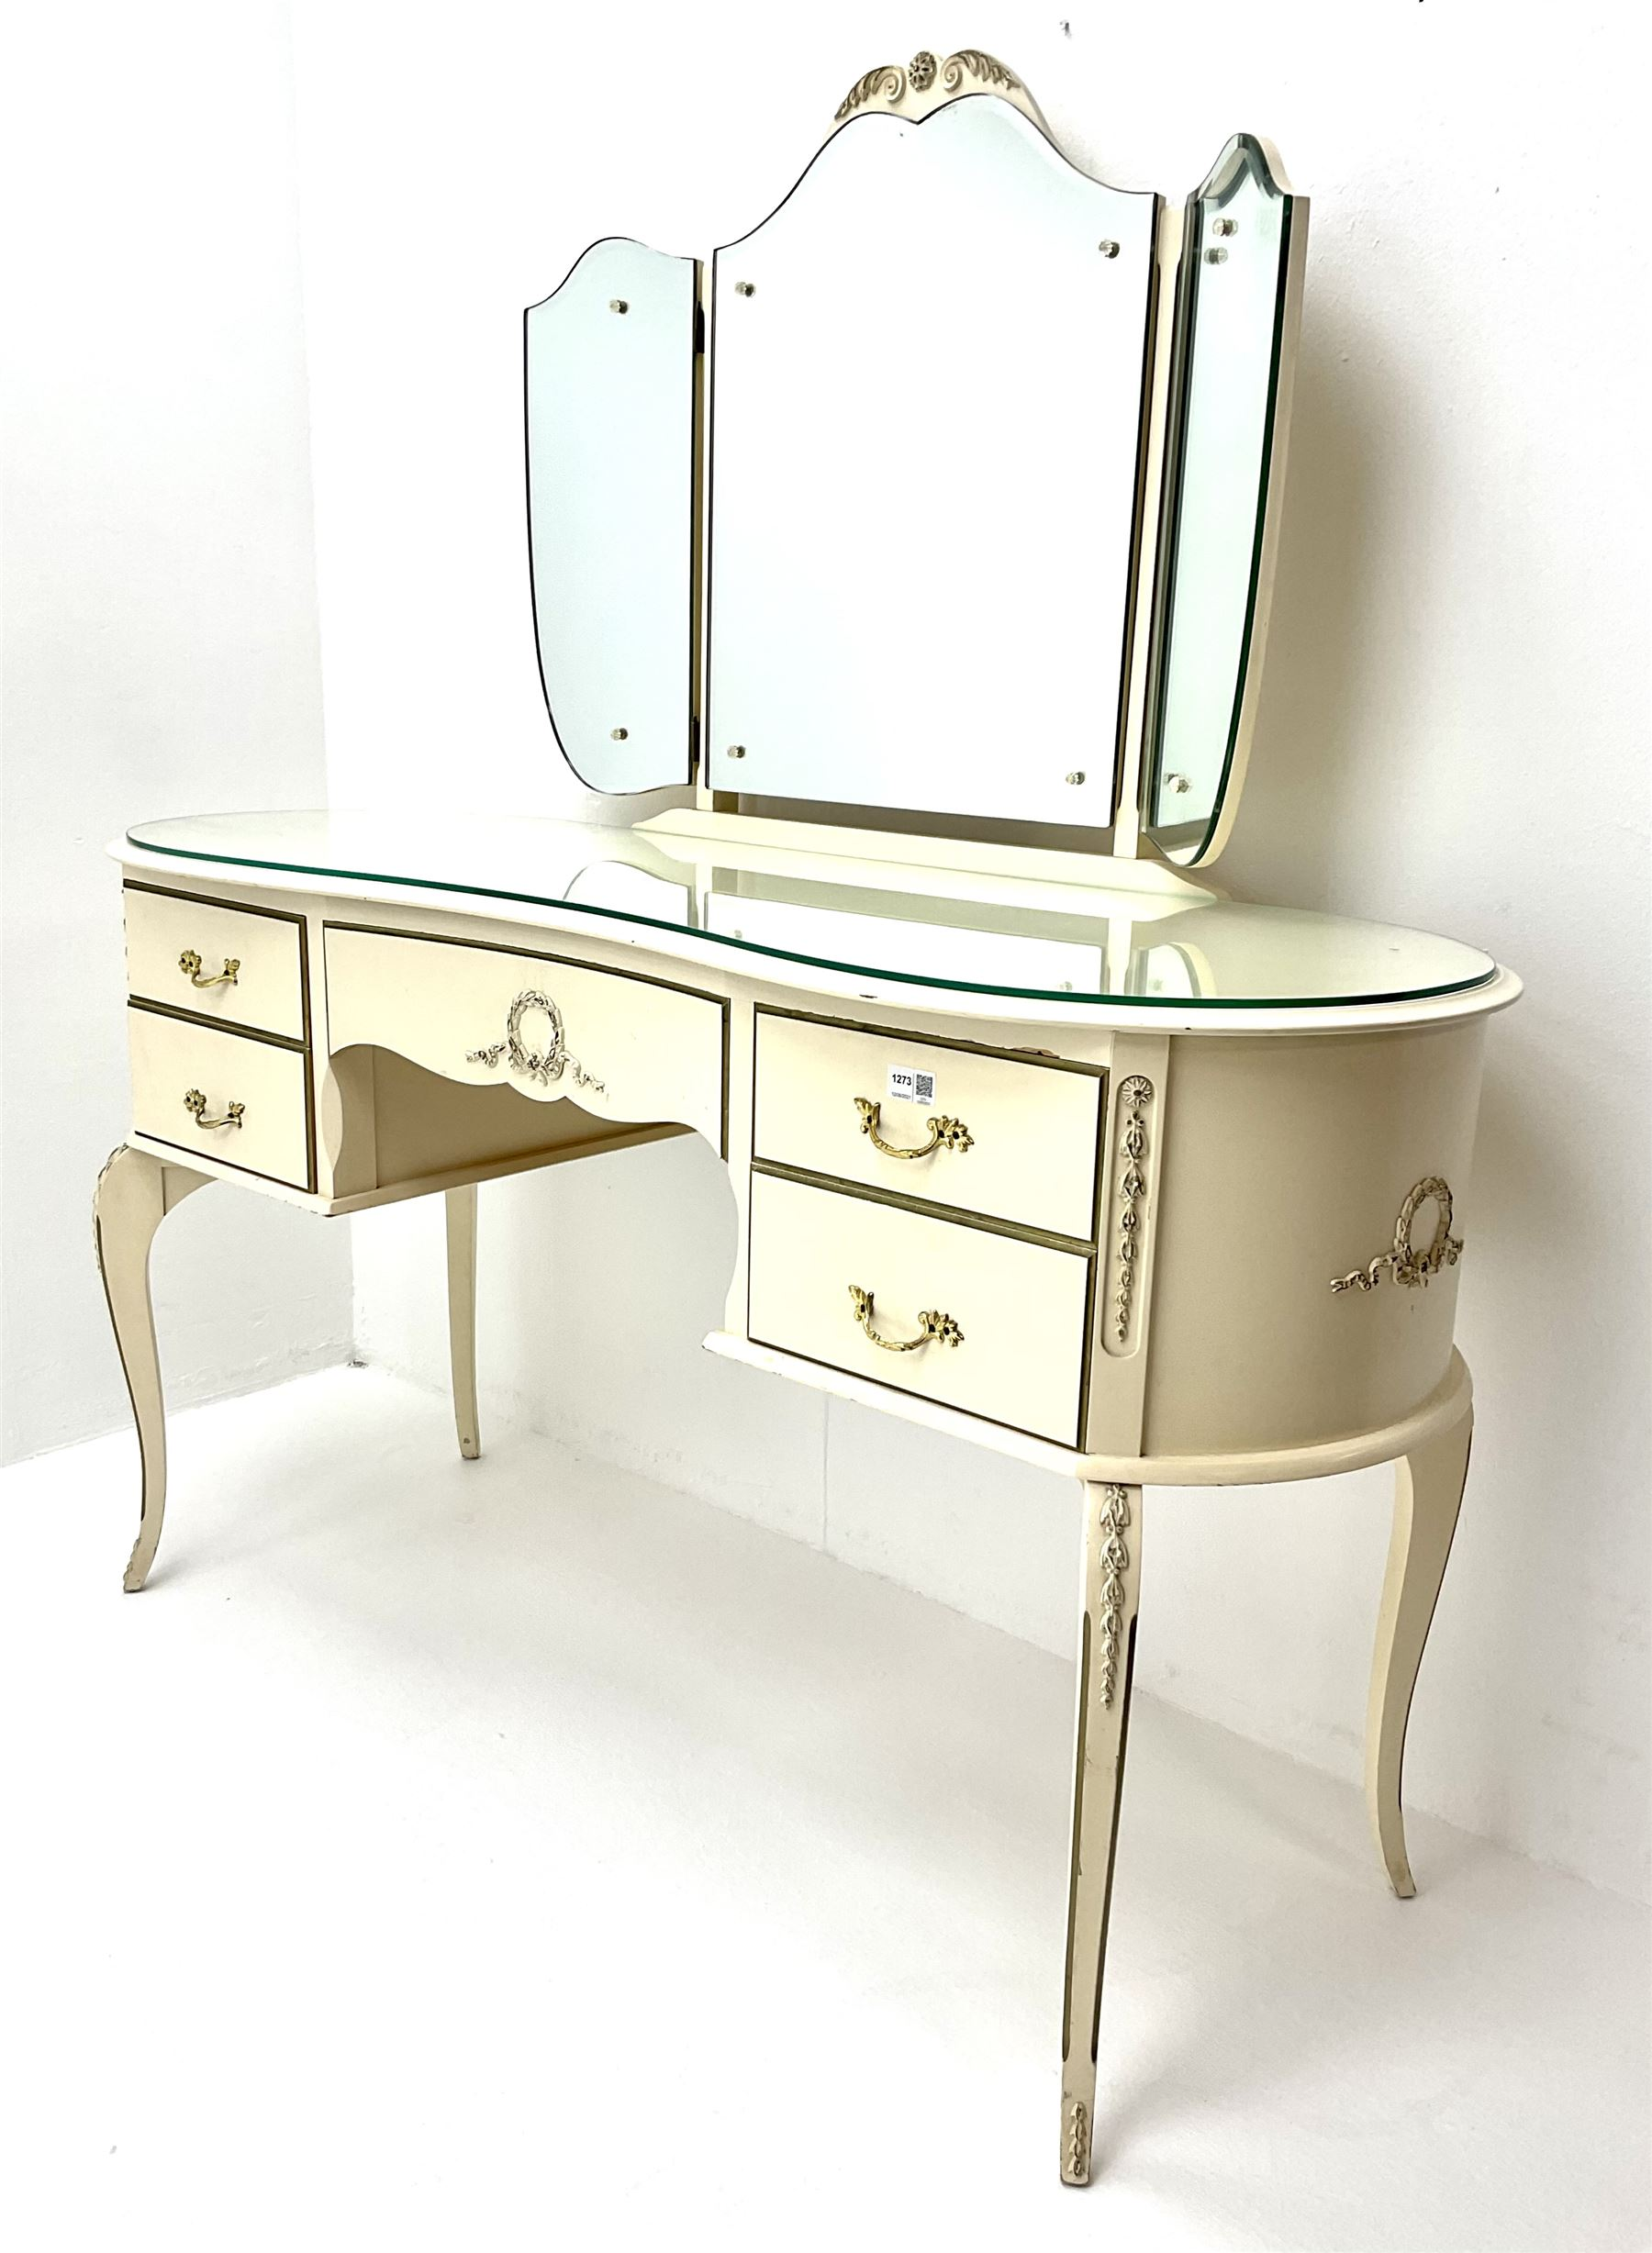 French style cream and gilt kidney shaped dressing table with Teri ole mirror - Image 2 of 3